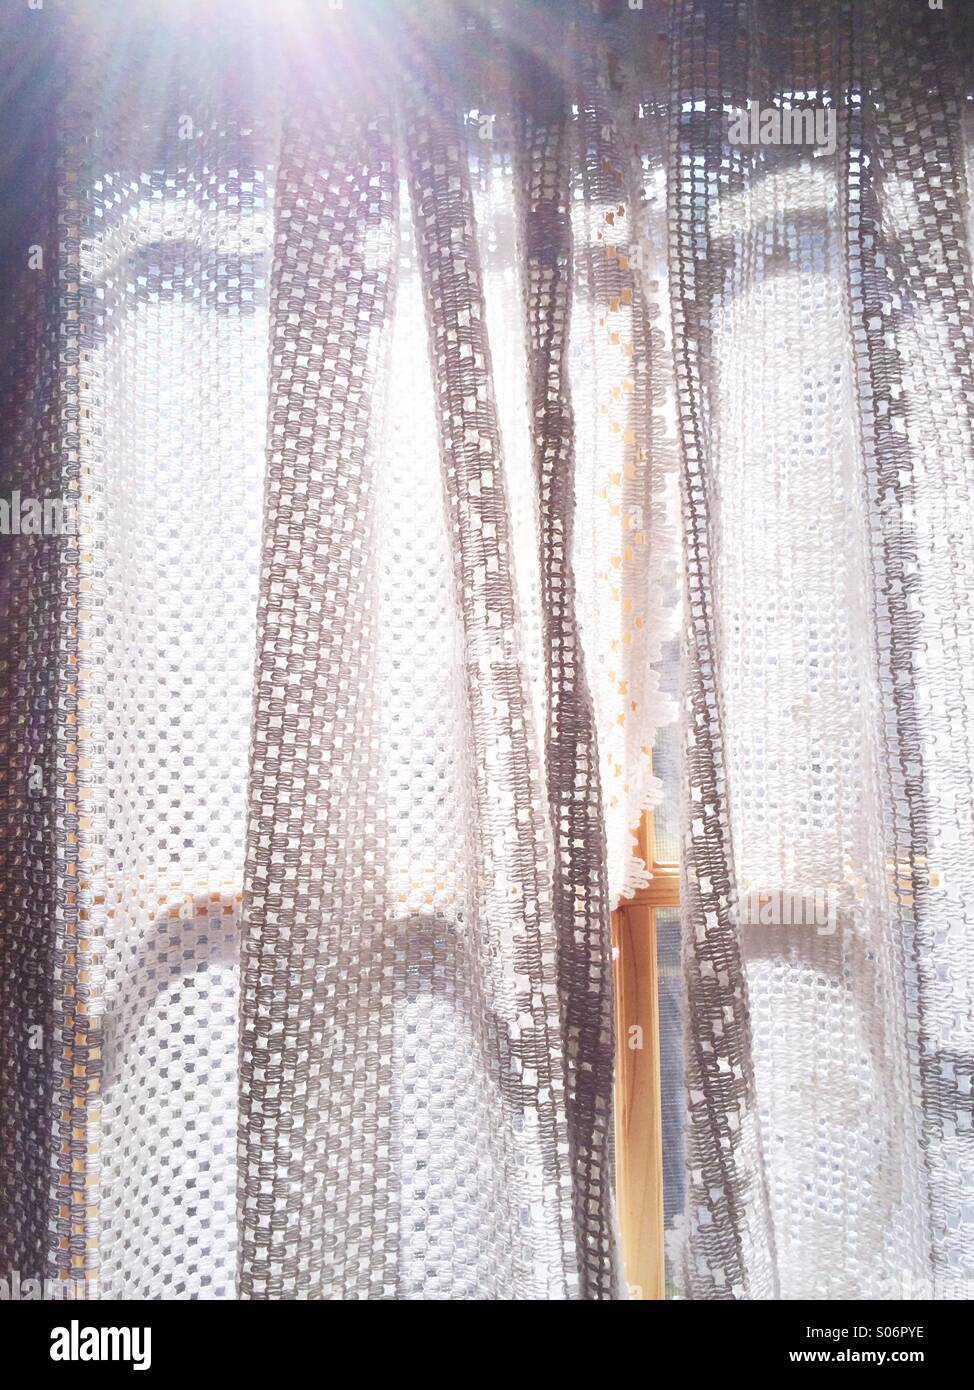 Lace curtains across a window with streaming sunlight. - Stock Image